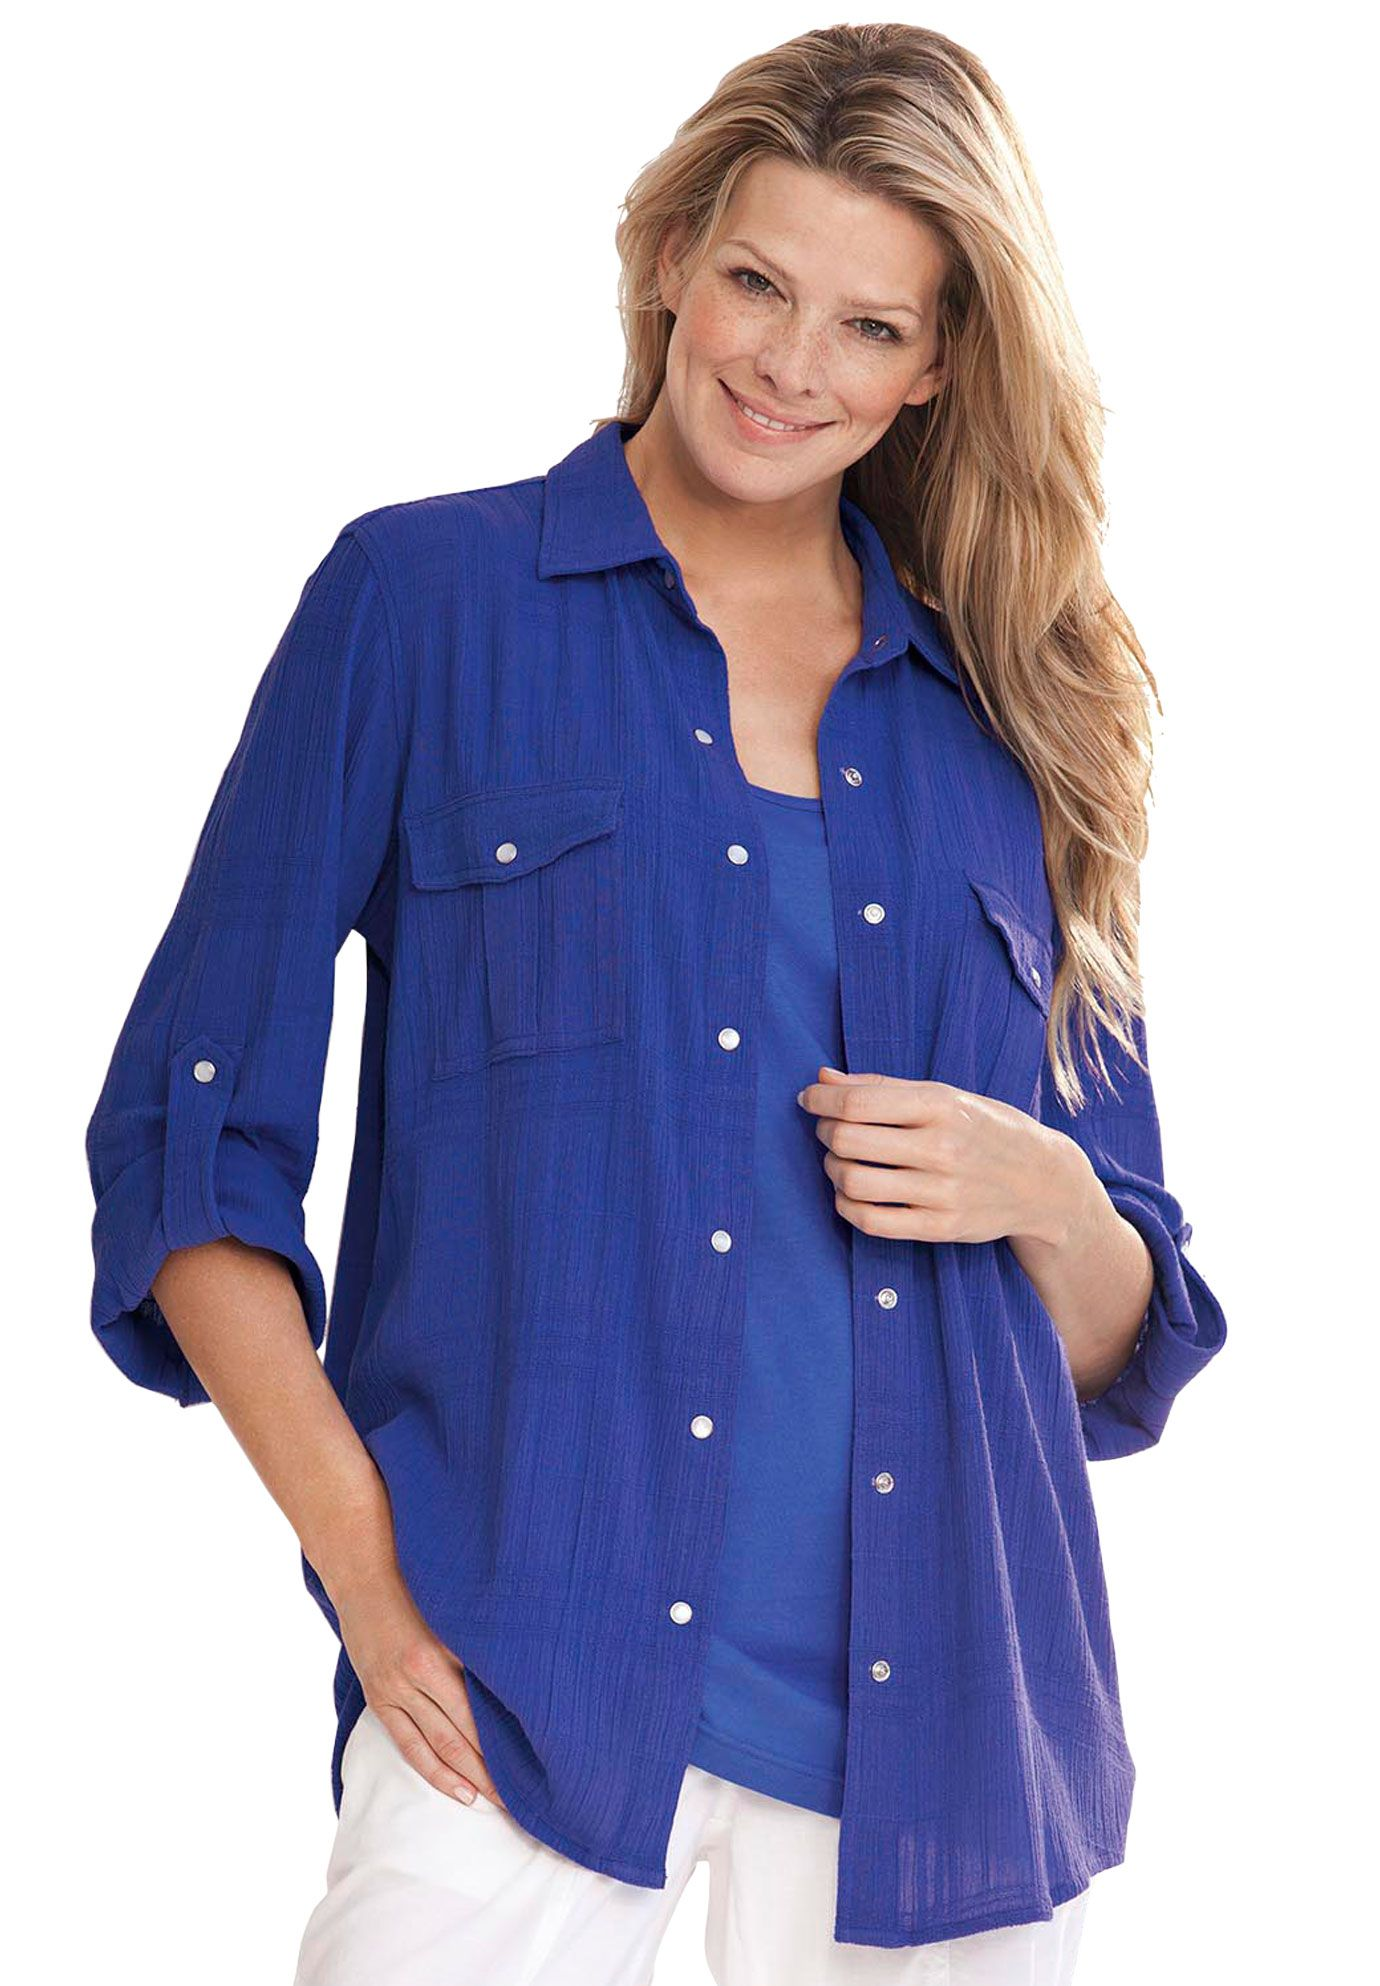 This Classic Woman Within Top In Cotton Gauze With Big